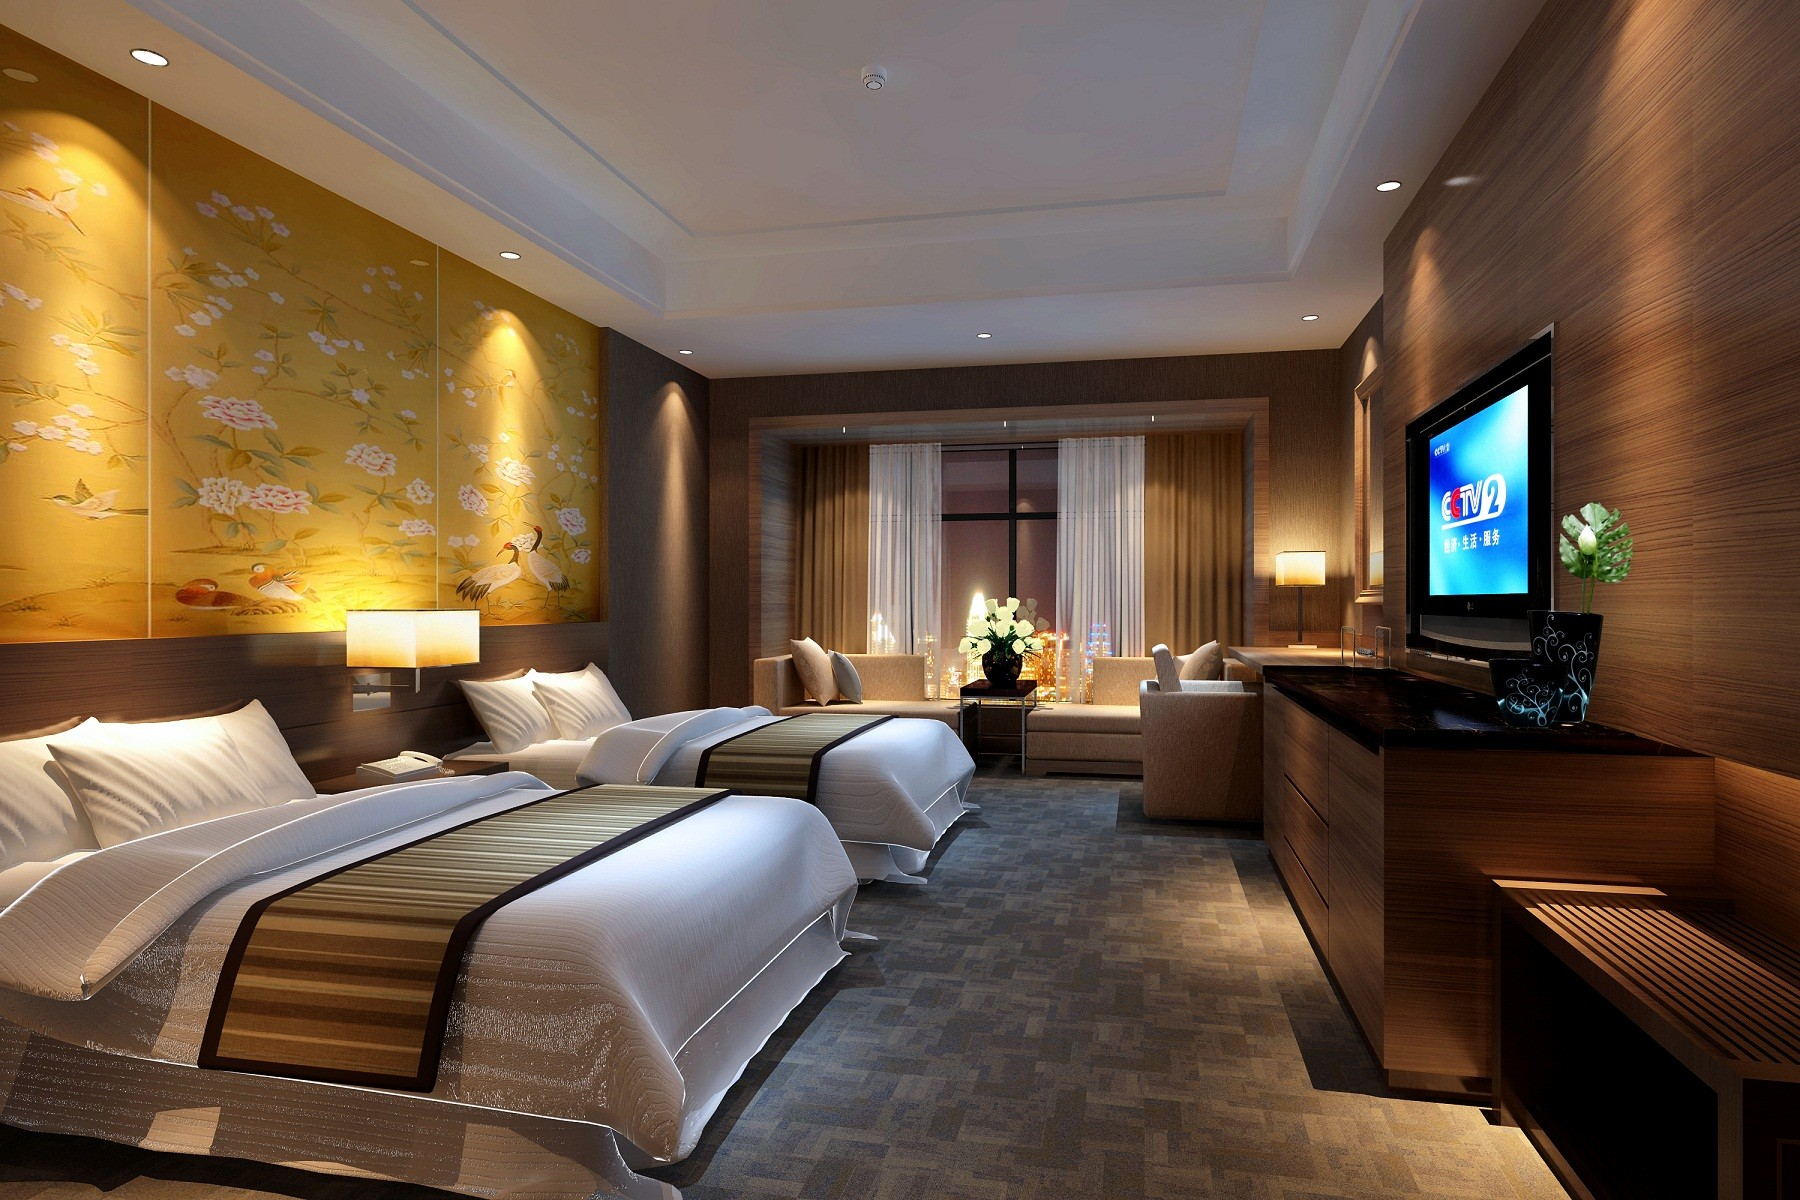 Accommodations for W hotel bedroom designs